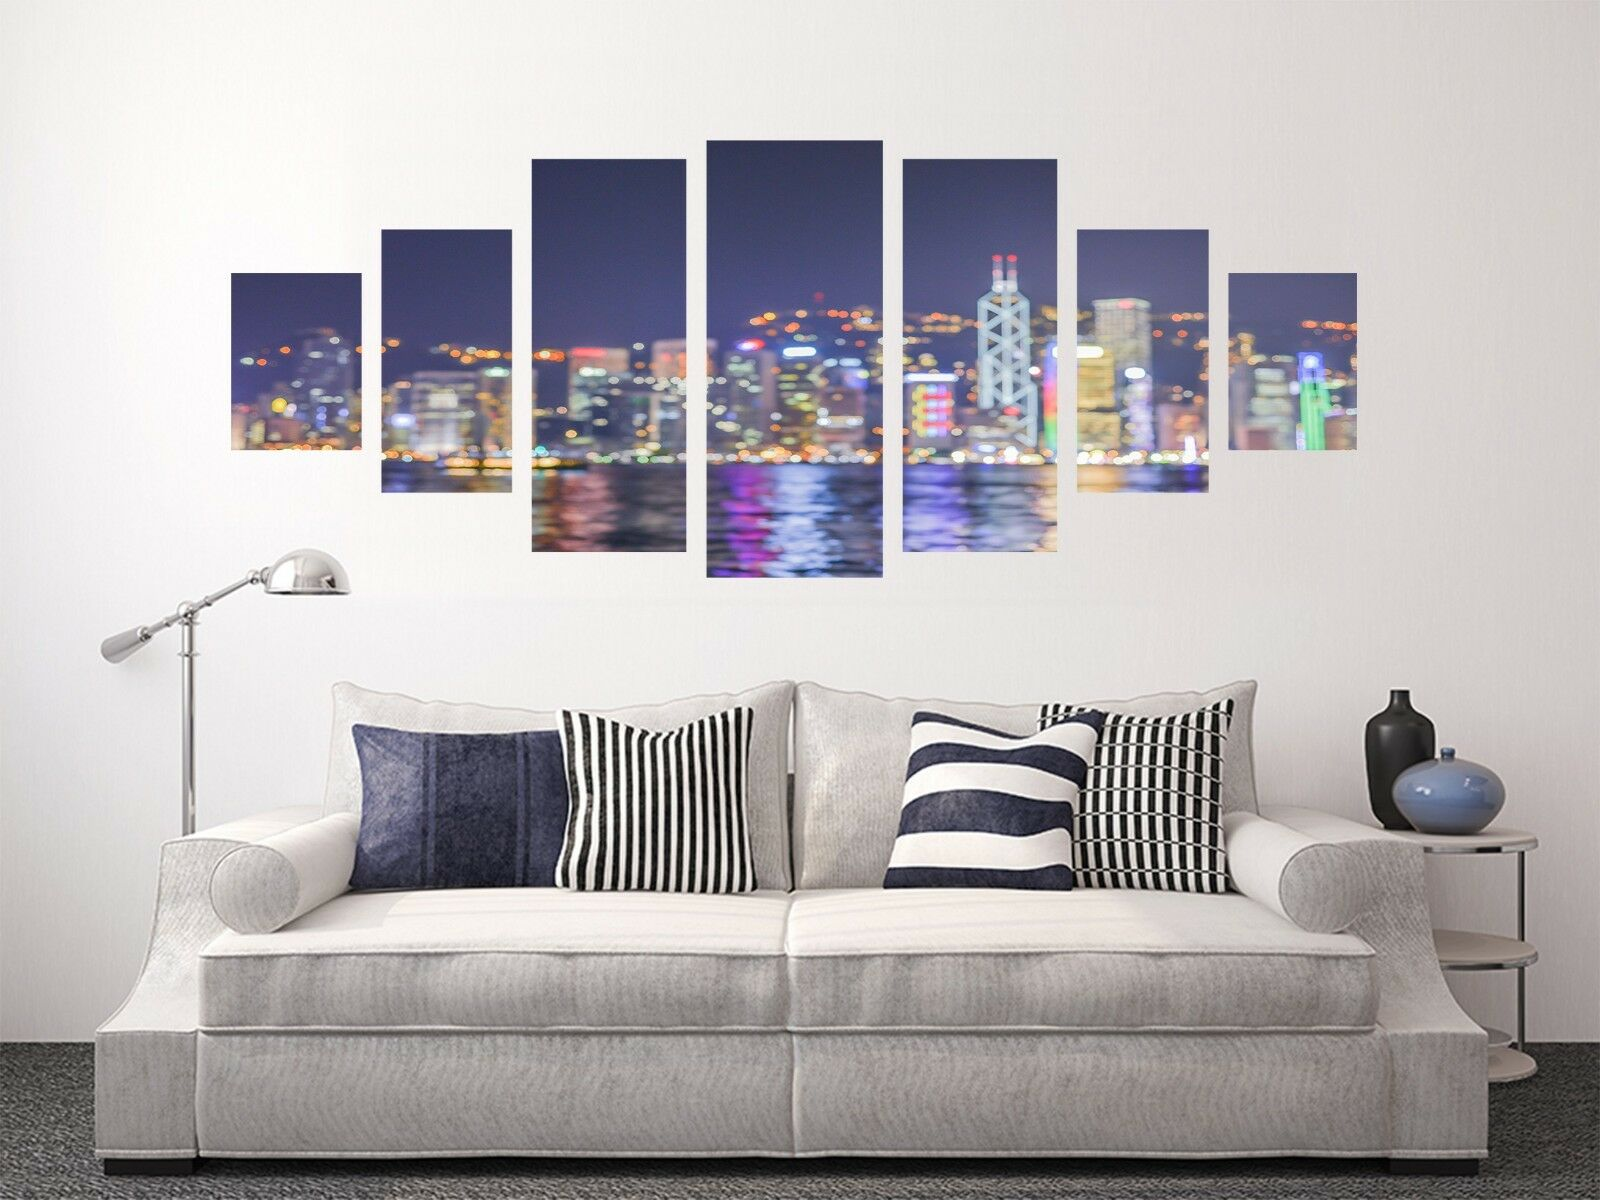 3D Night View City 66 Unframed Print Wall Paper Decal Wall Deco Indoor AJ Wall